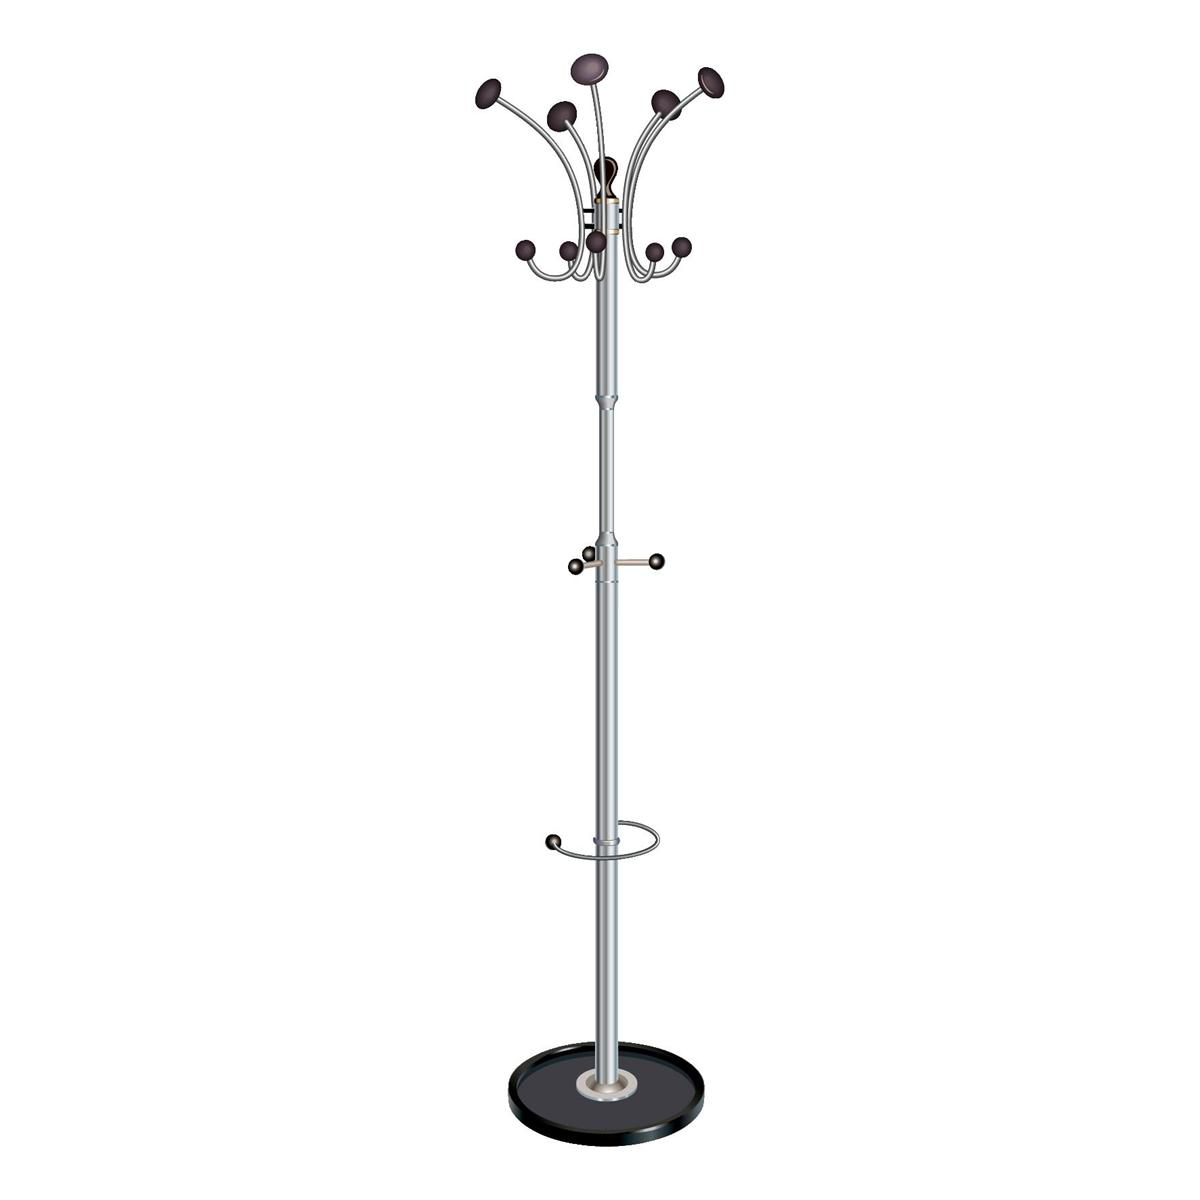 Coat racks 5 Star Facilities Coat Stand with Revolving Head 5 Pegs 5 Hooks Base 380mm Height 1890mm Black/Chrome